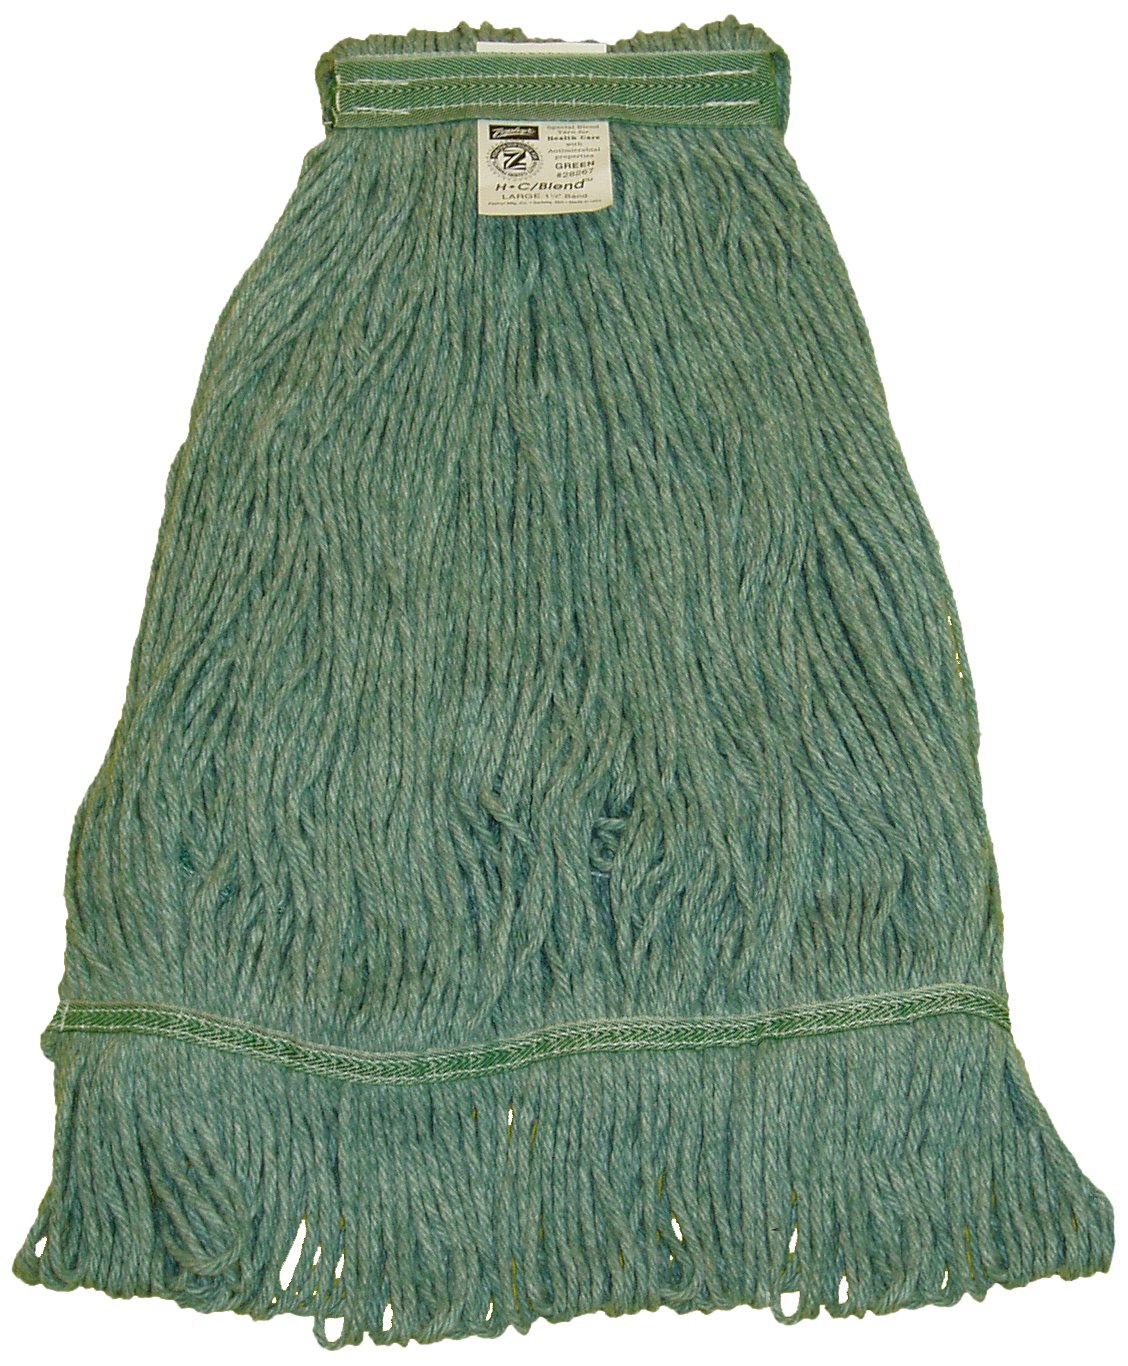 Zephyr 28267 HC/Blend Green 4-Ply Yarn Large Health Care Loop Mop Head with 1-1/4'' Narrow Headband (Pack of 12)